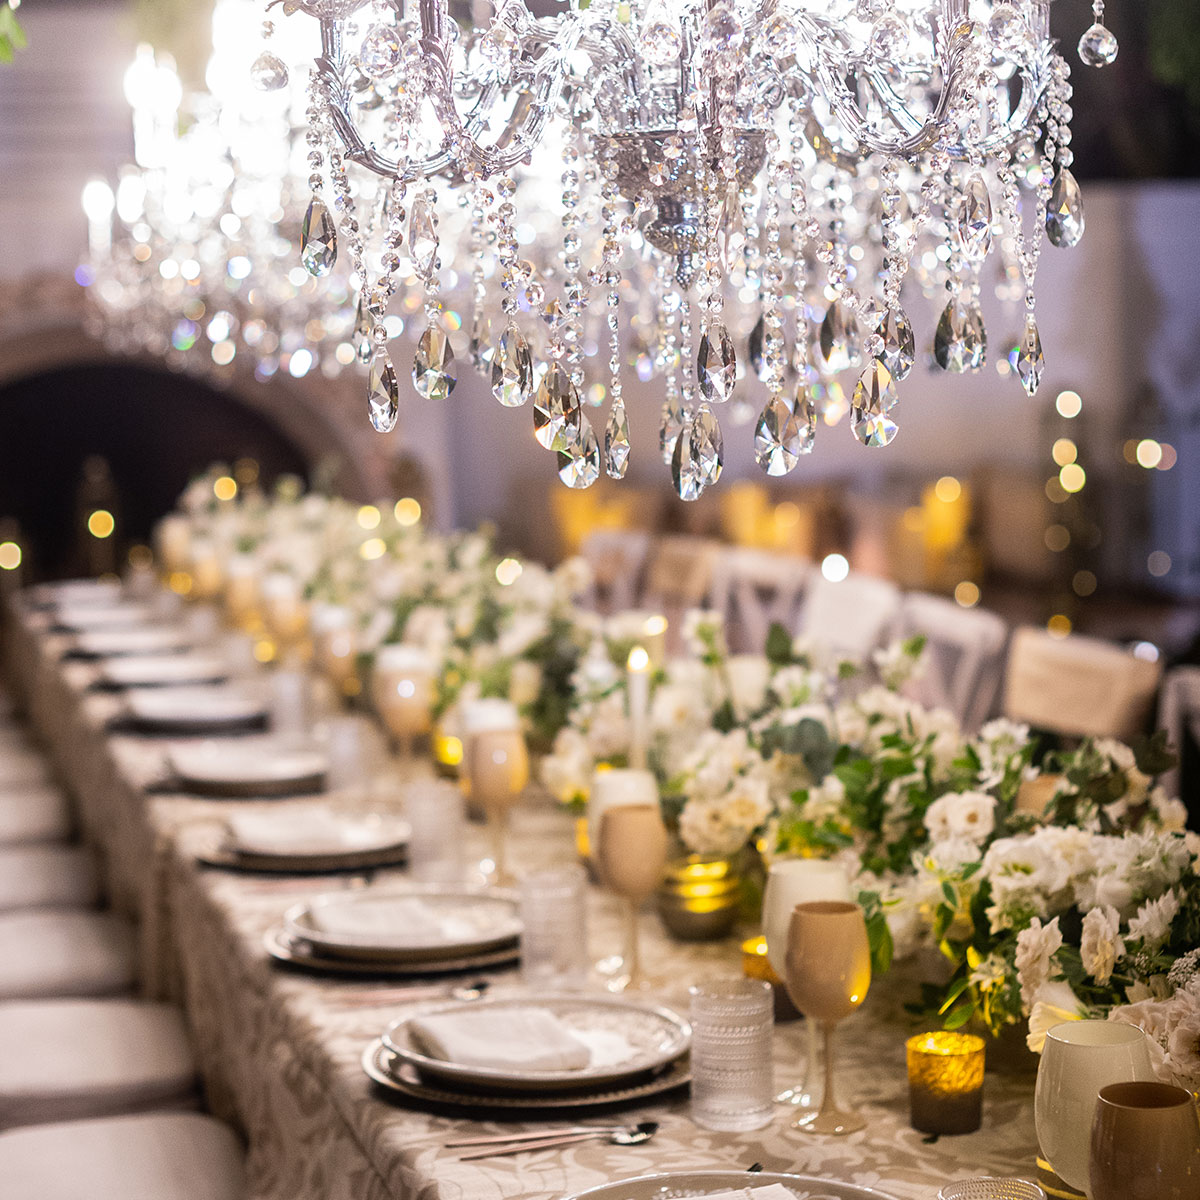 palmilla one & only beach wedding rancho shibumi wedding design by del cabo weddings photo by leila brewster event design and wedding planning 7